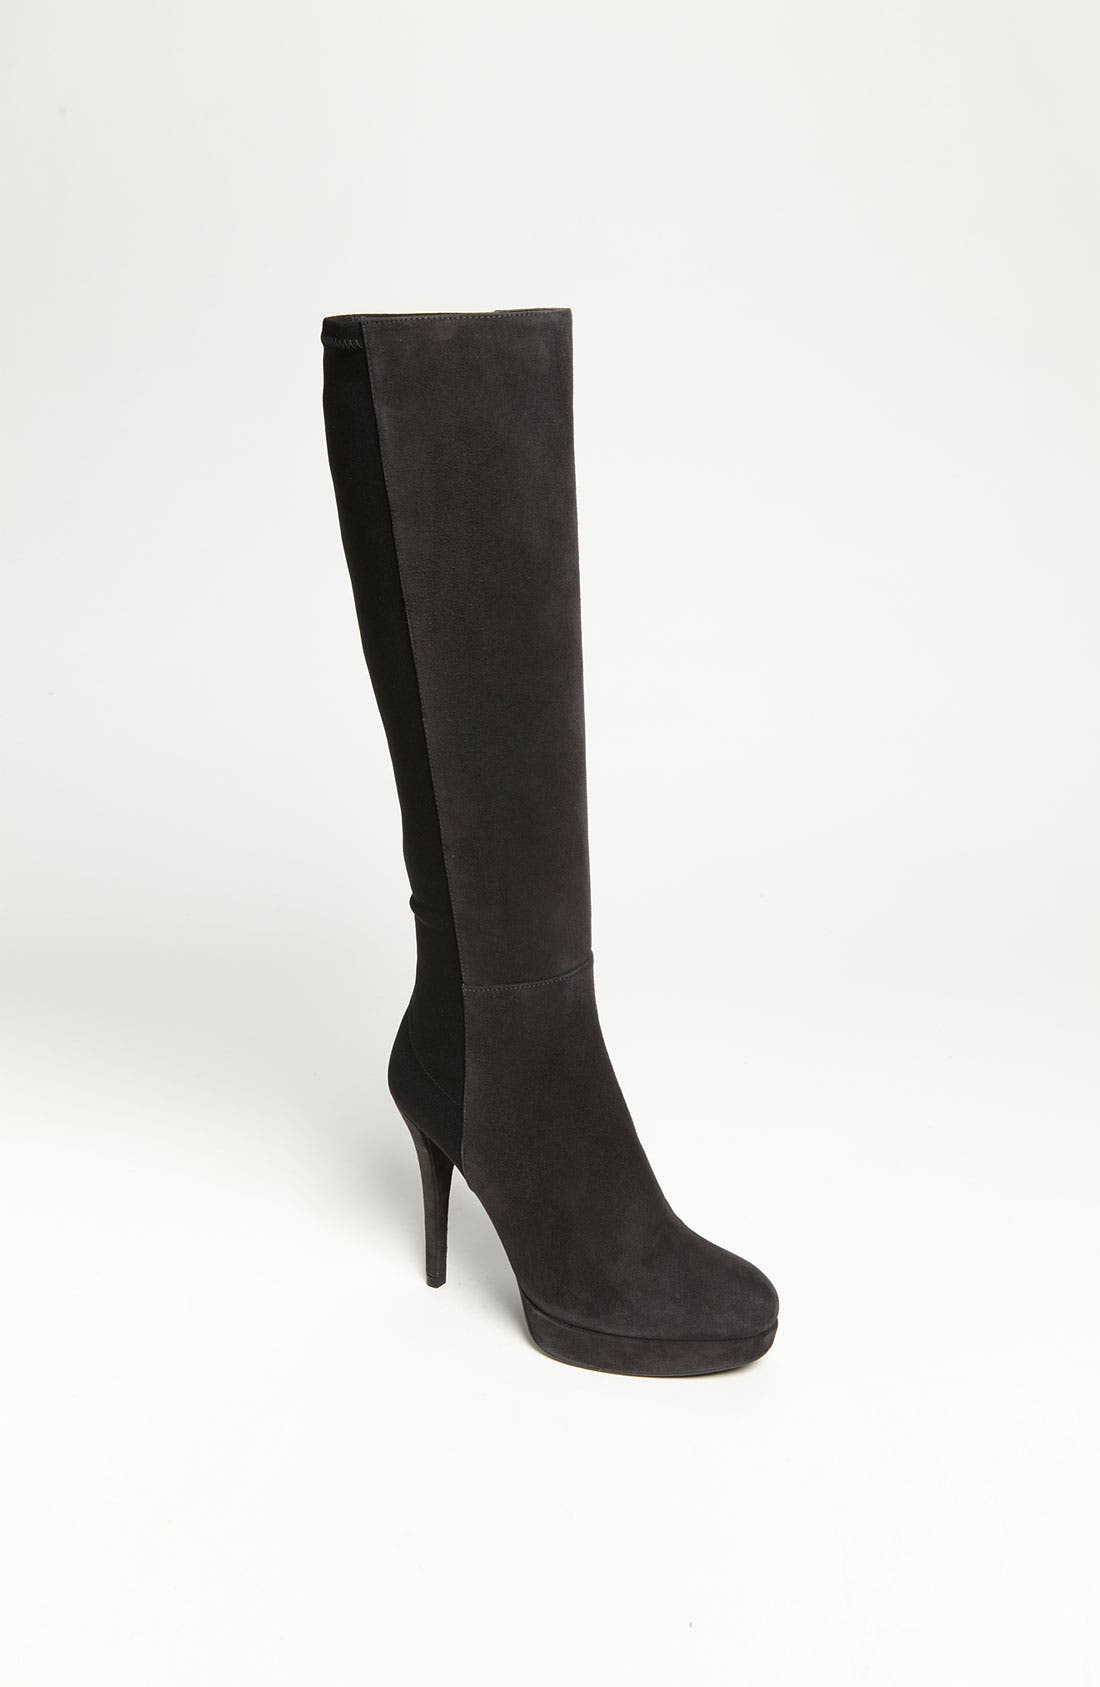 Alternate Image 1 Selected - Stuart Weitzman 'Skyline' Boot (Nordstrom Exclusive)